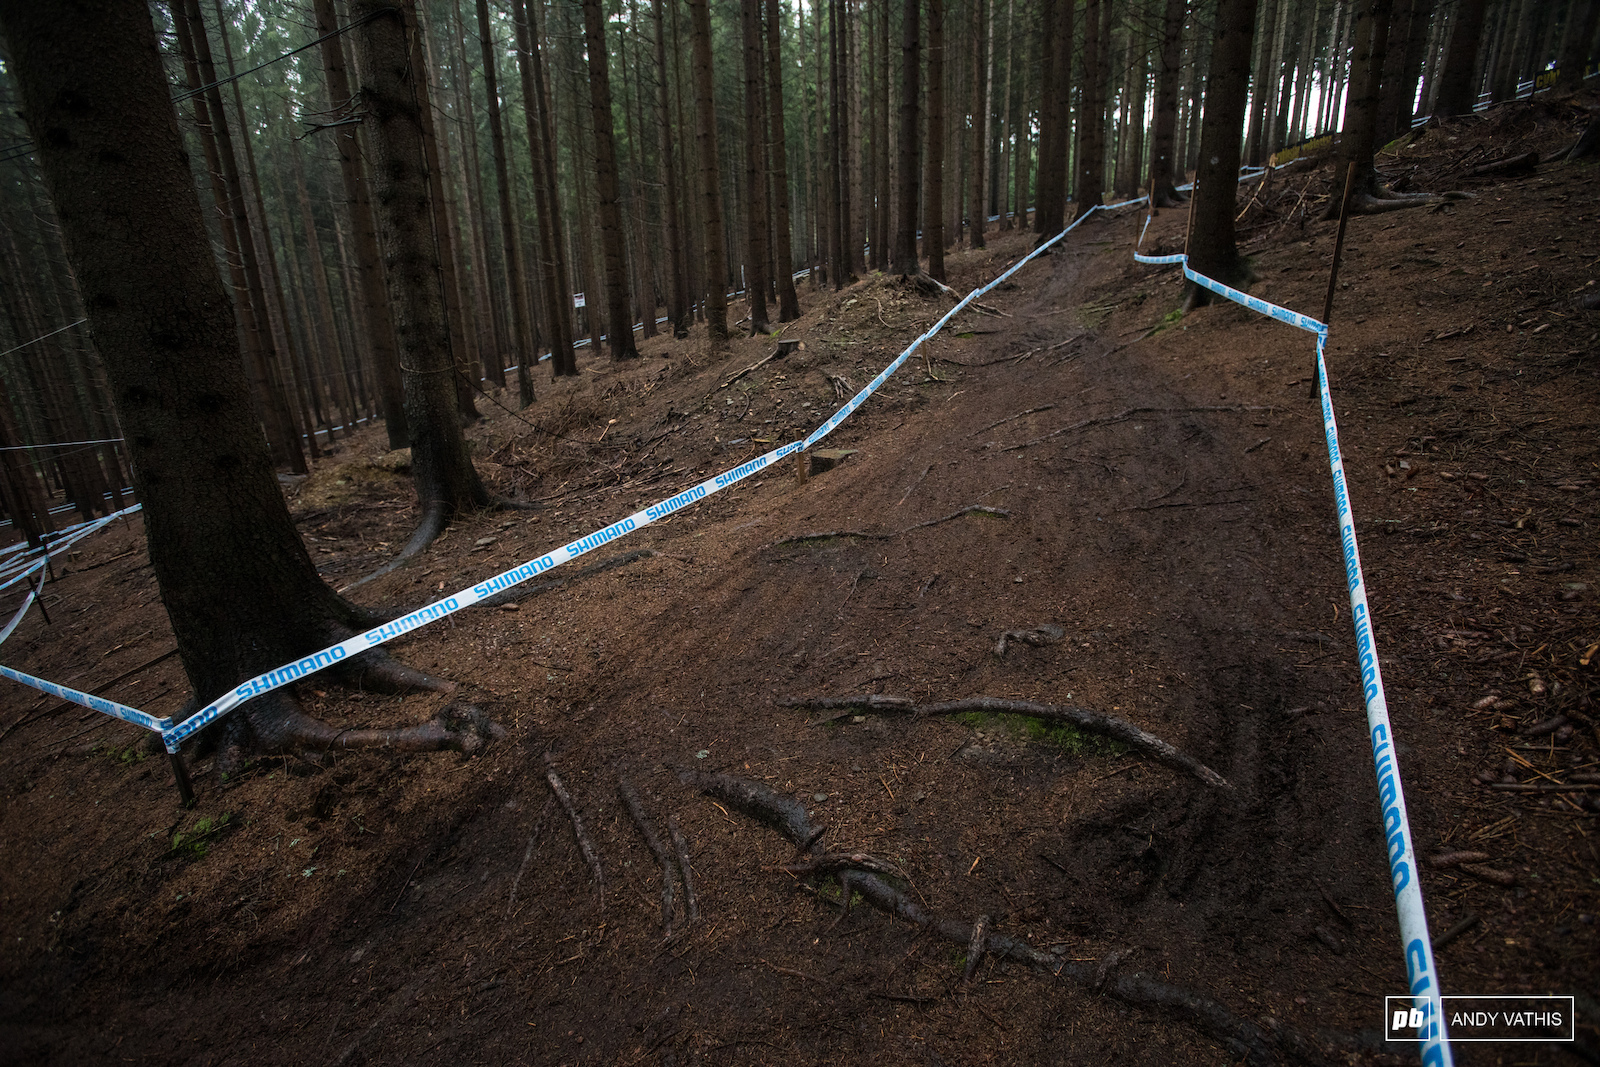 The new Shimano Expert CLimb 2 for Thursday s race adds an extra loop after the Cannondale BMX section.